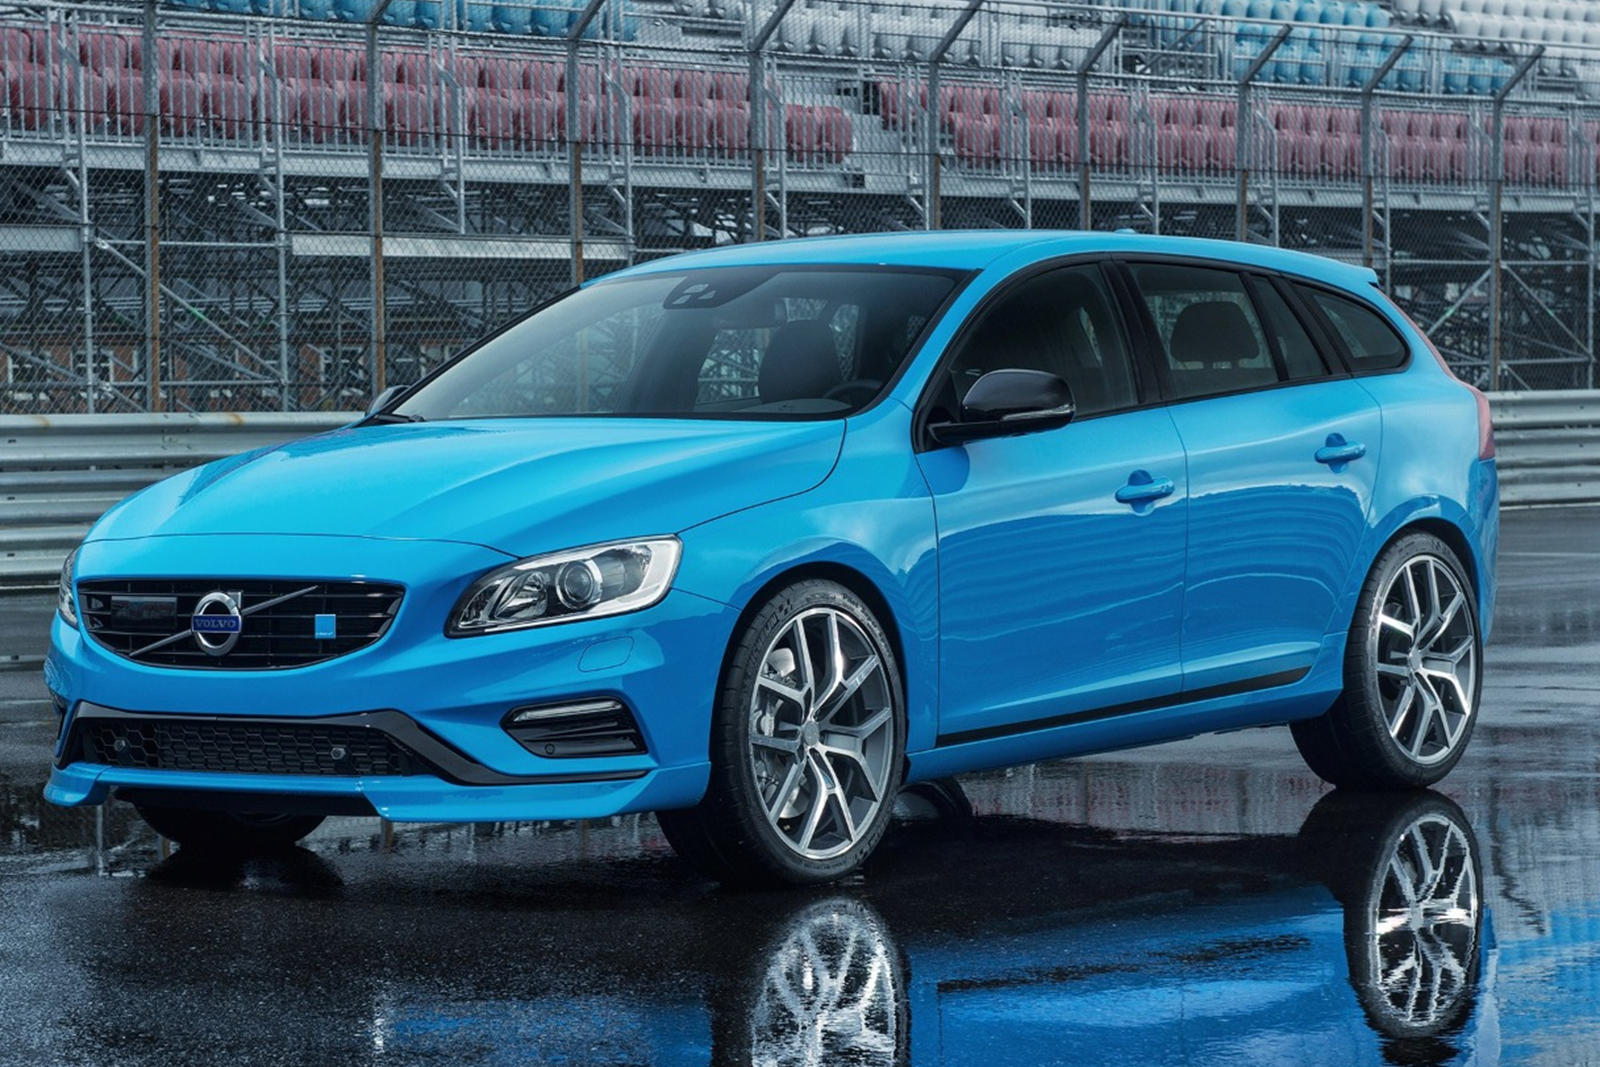 2017 Volvo V60 Polestar Review Trims Specs Price New Interior Features Exterior Design And Specifications Carbuzz